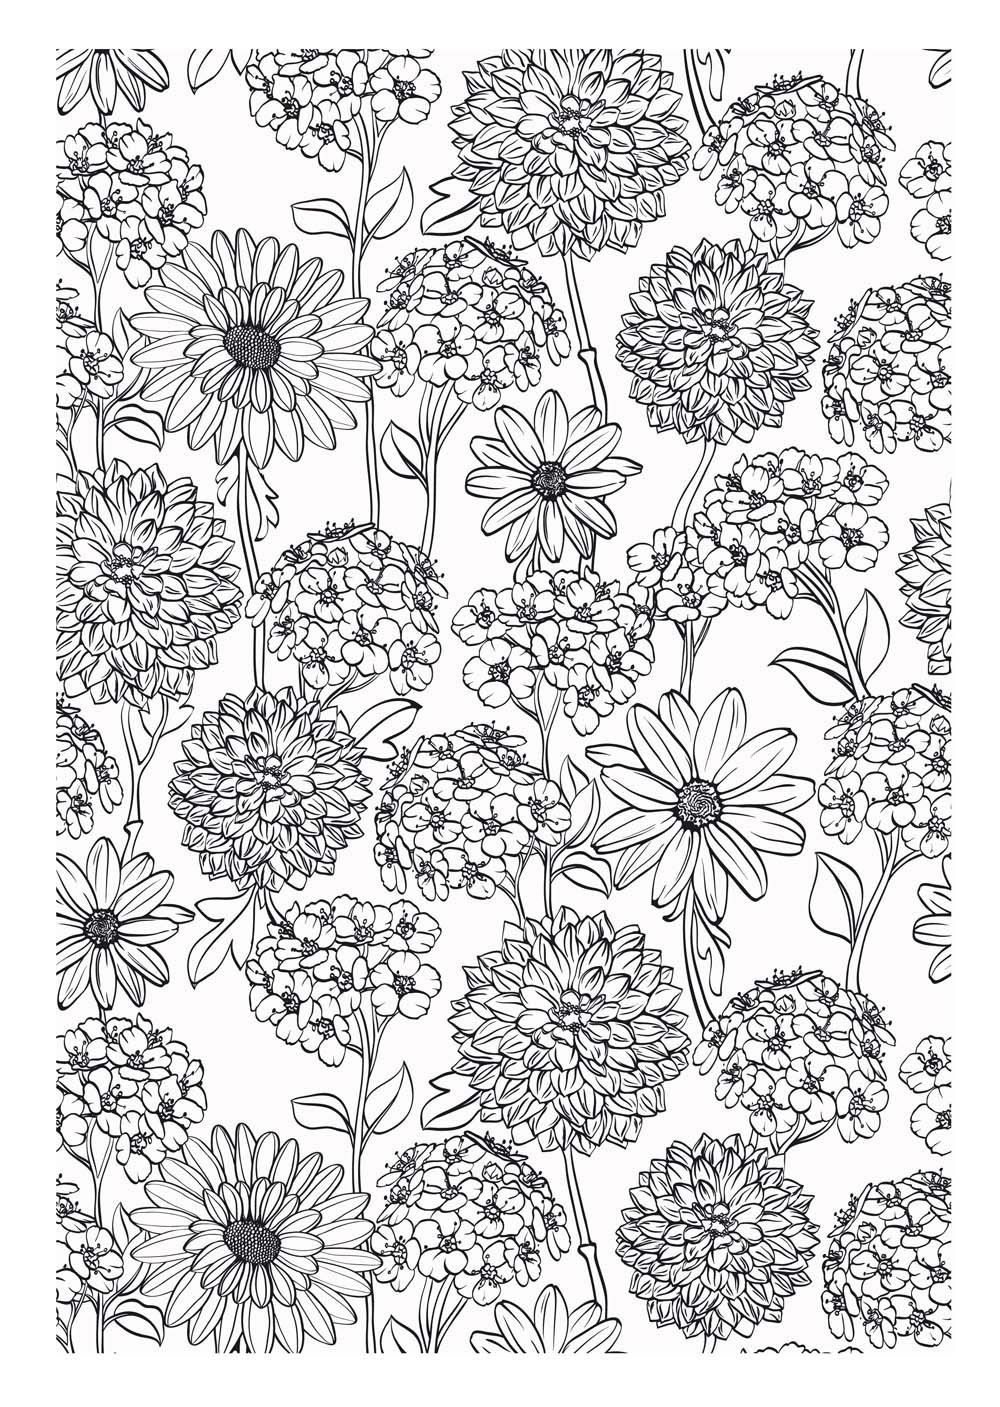 Fleurs Coloriage pour adultes Coloring Pages for Adults